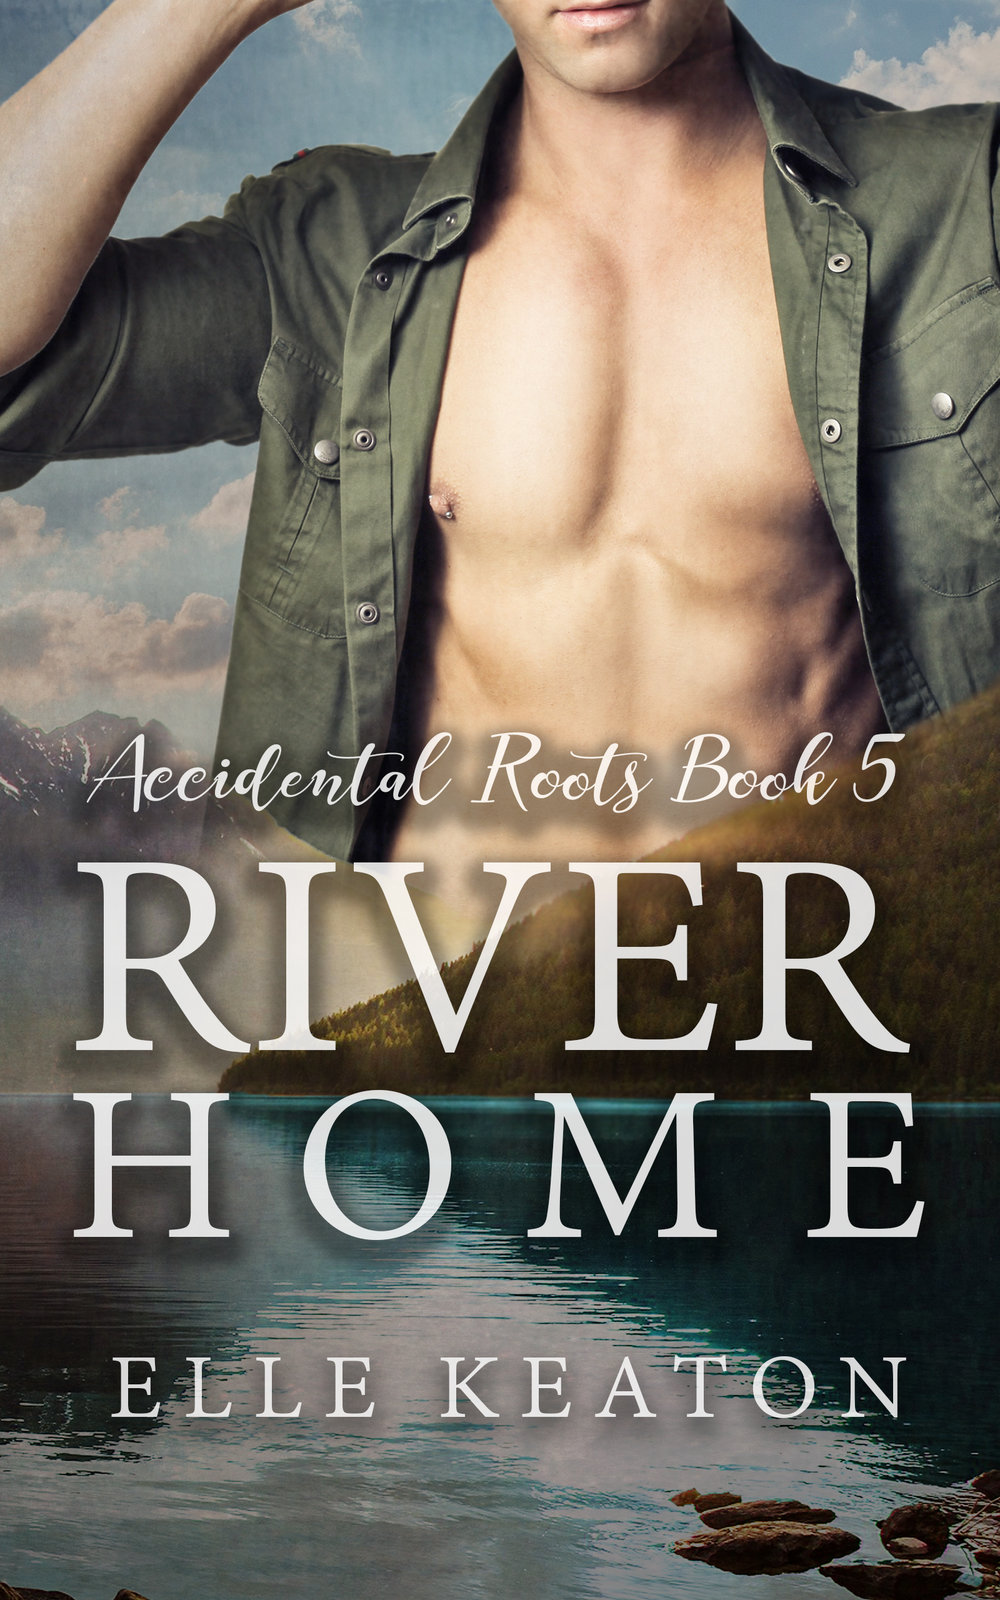 - See this #AmazonGiveaway for a chance to win: River Home (Accidental Roots Book 5) (Kindle Edition). https://giveaway.amazon.com/p/4bd8a3fa24432646 NO PURCHASE NECESSARY. Ends the earlier of Mar 8, 2018 11:59 PM PST, or when all prizes are claimed. See Official Rules http://amzn.to/GArules.